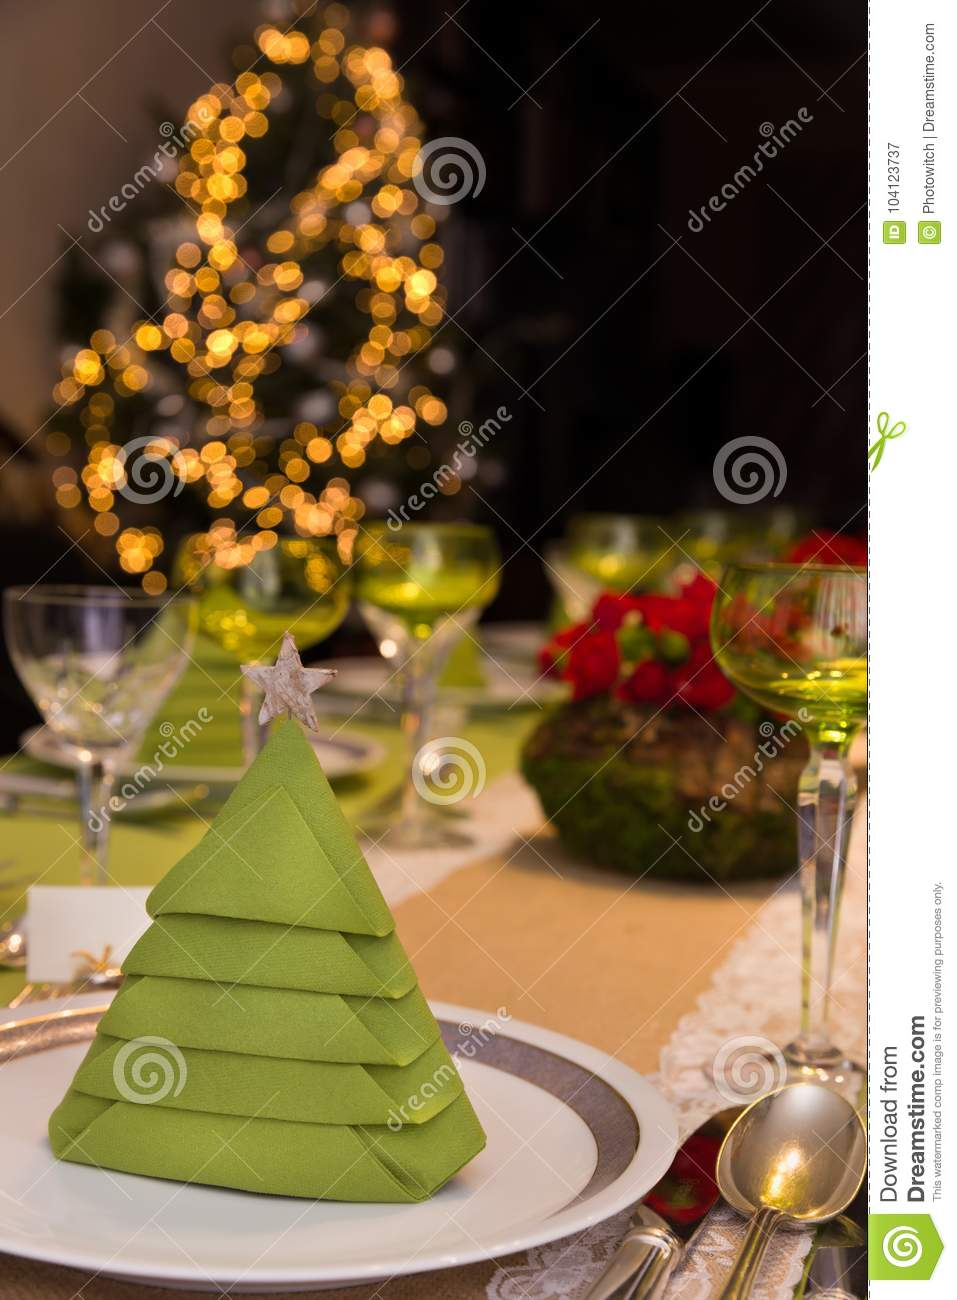 Dinner Table With Christmas Tree Stock Image , Image of